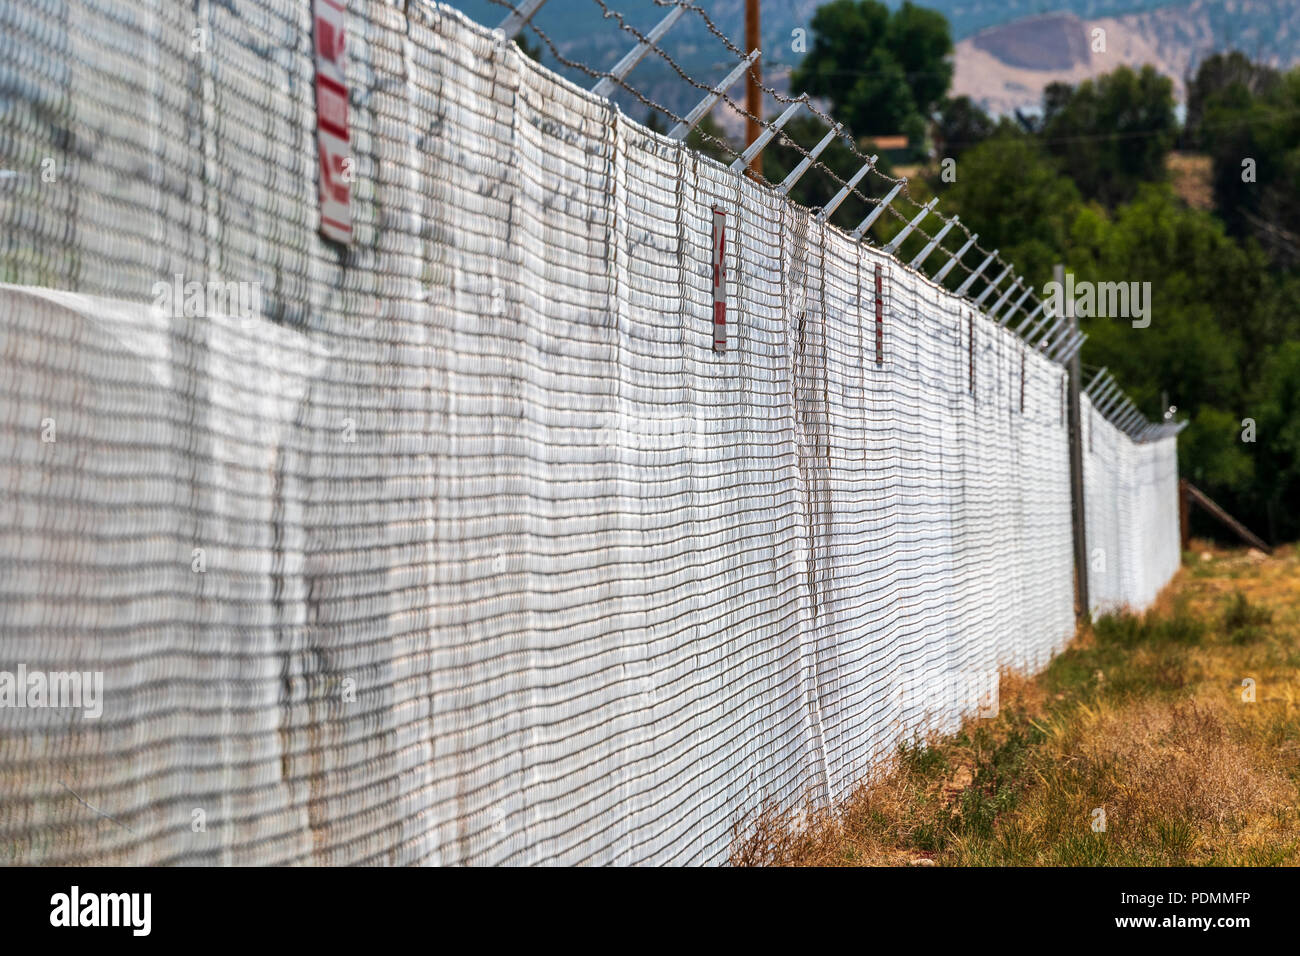 Wire Obstacle Stock Photos & Wire Obstacle Stock Images - Alamy